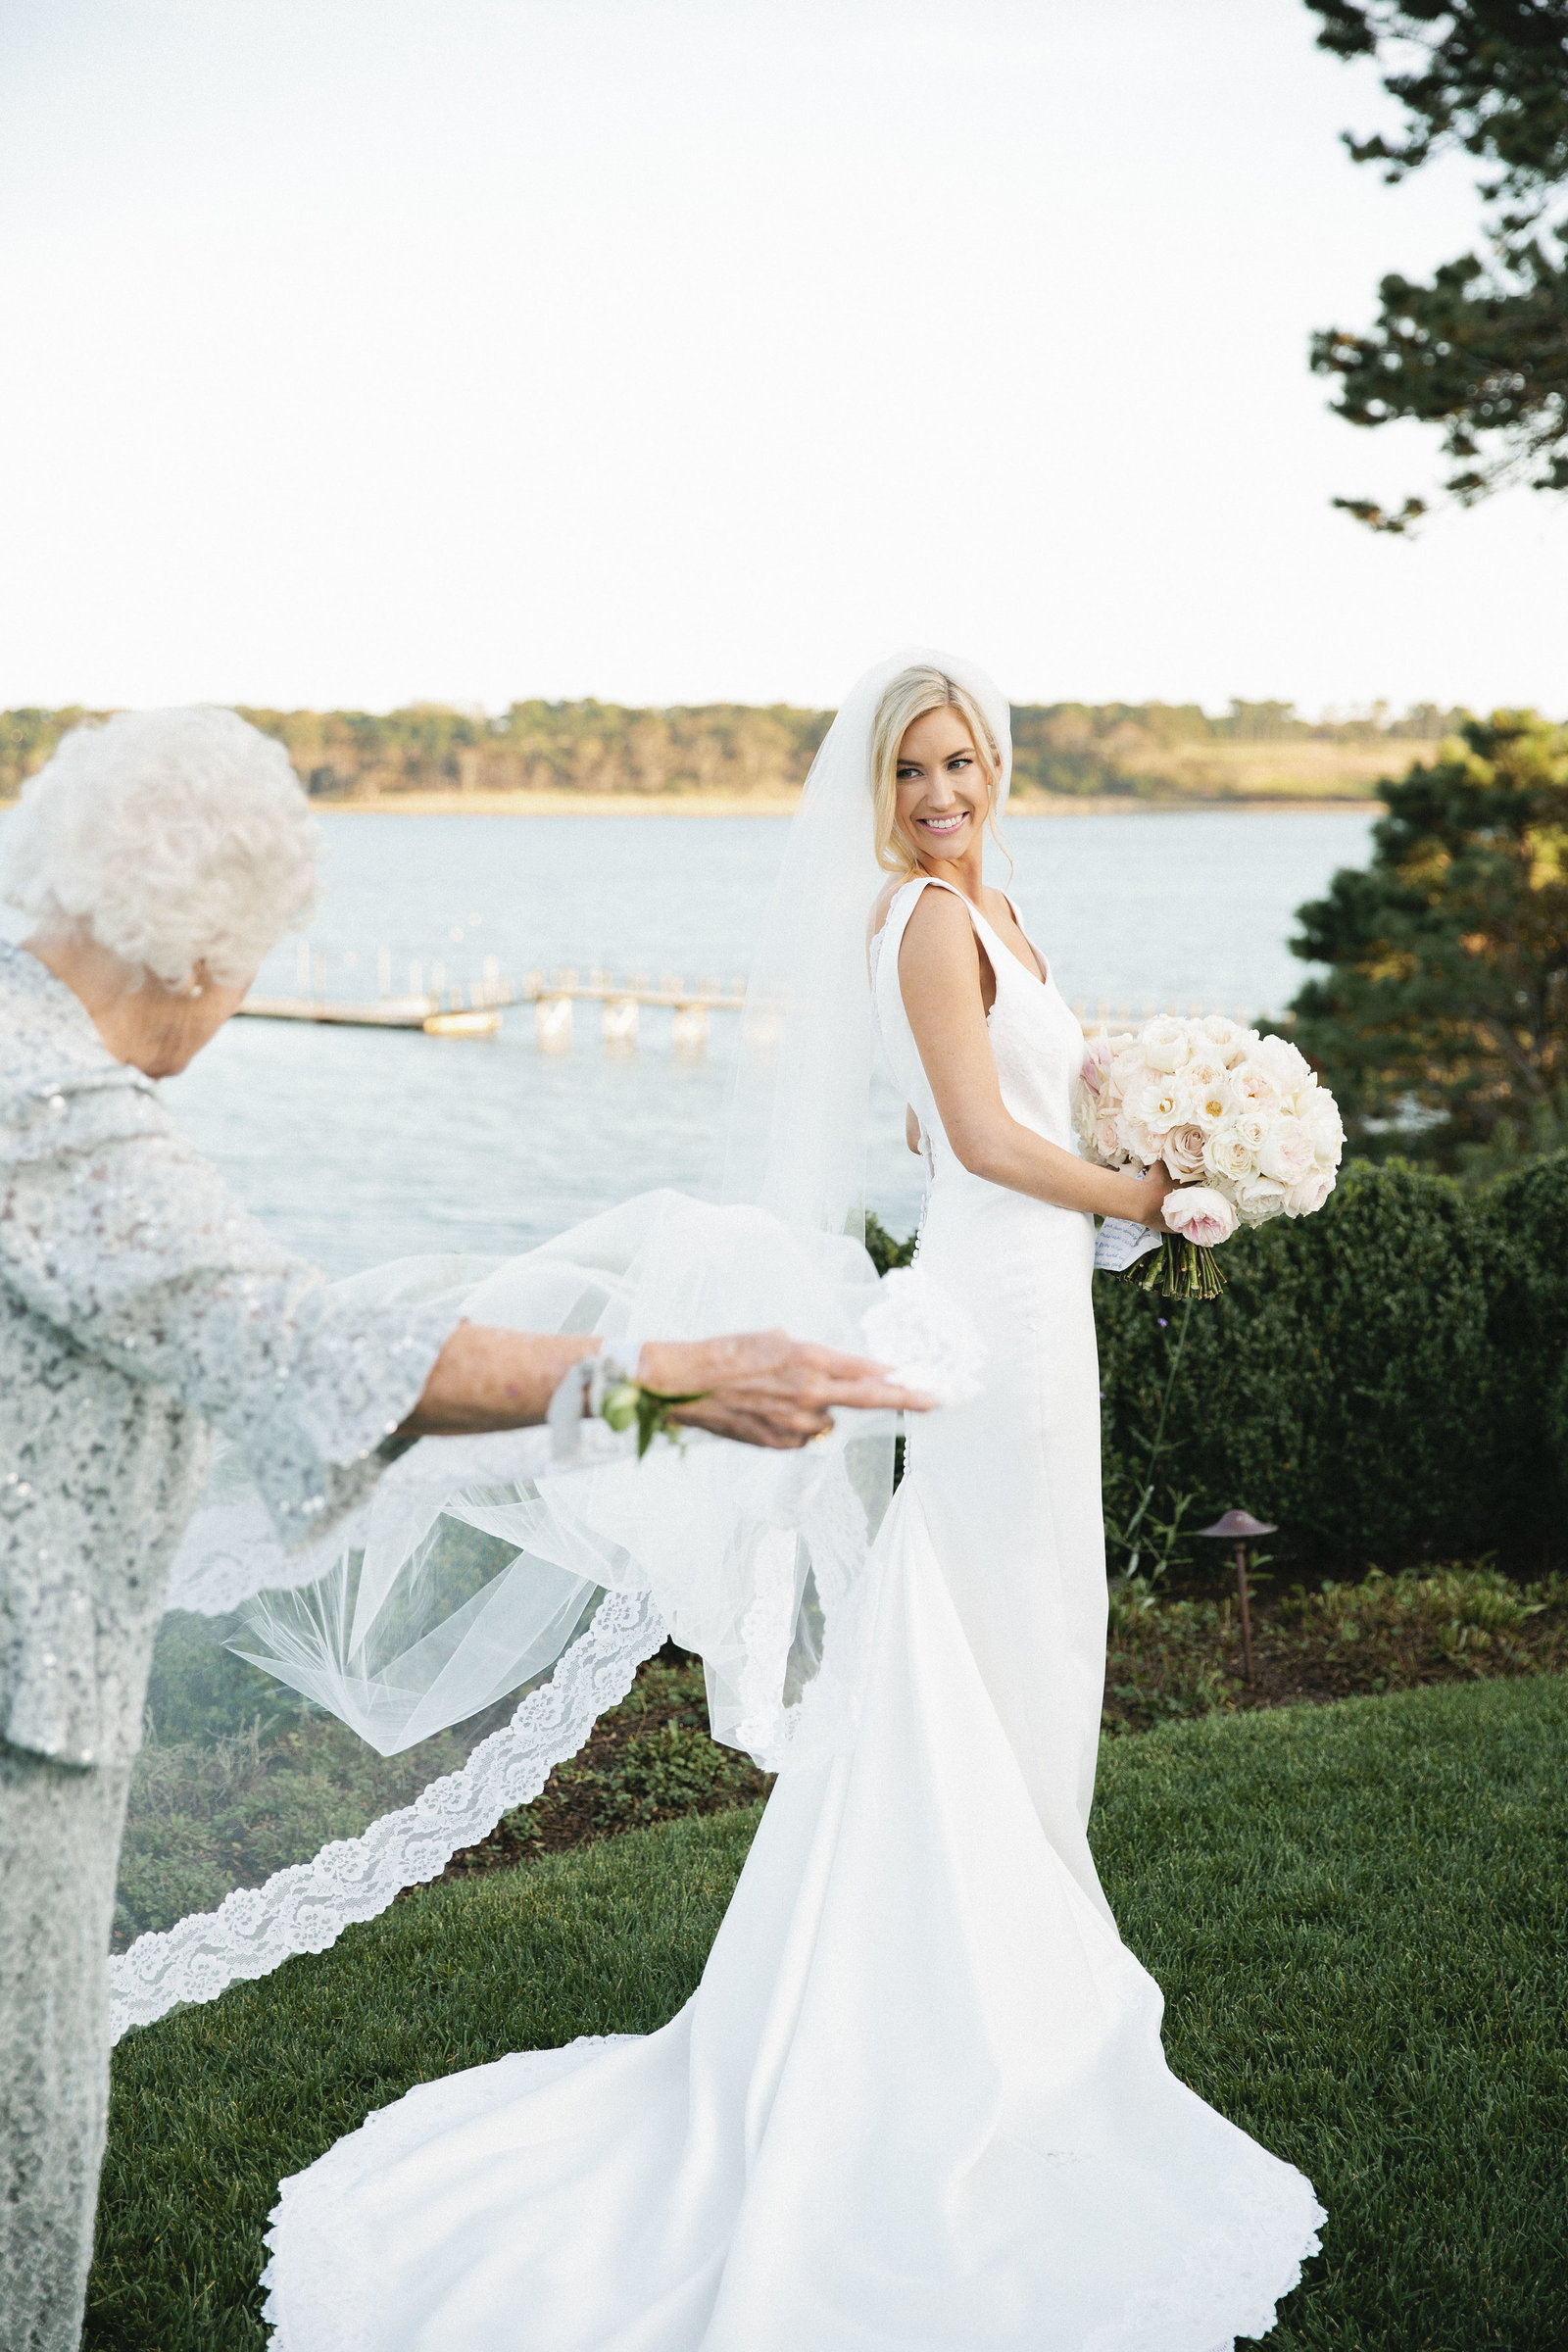 Whitney BIschoff's grandmother fluffing the bride's dress and holding the bride's train